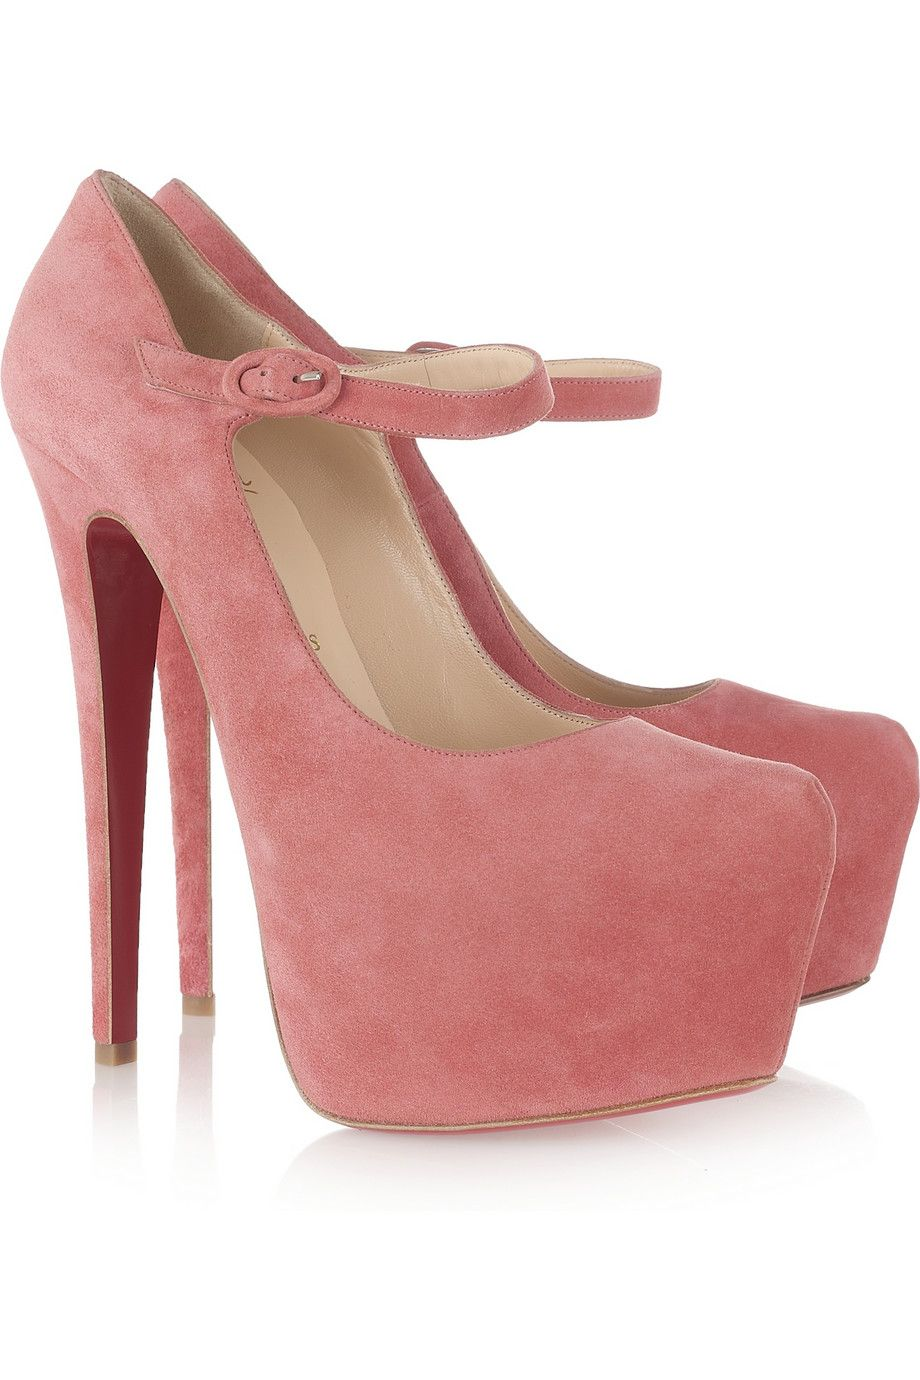 christian louboutin suede mary jane